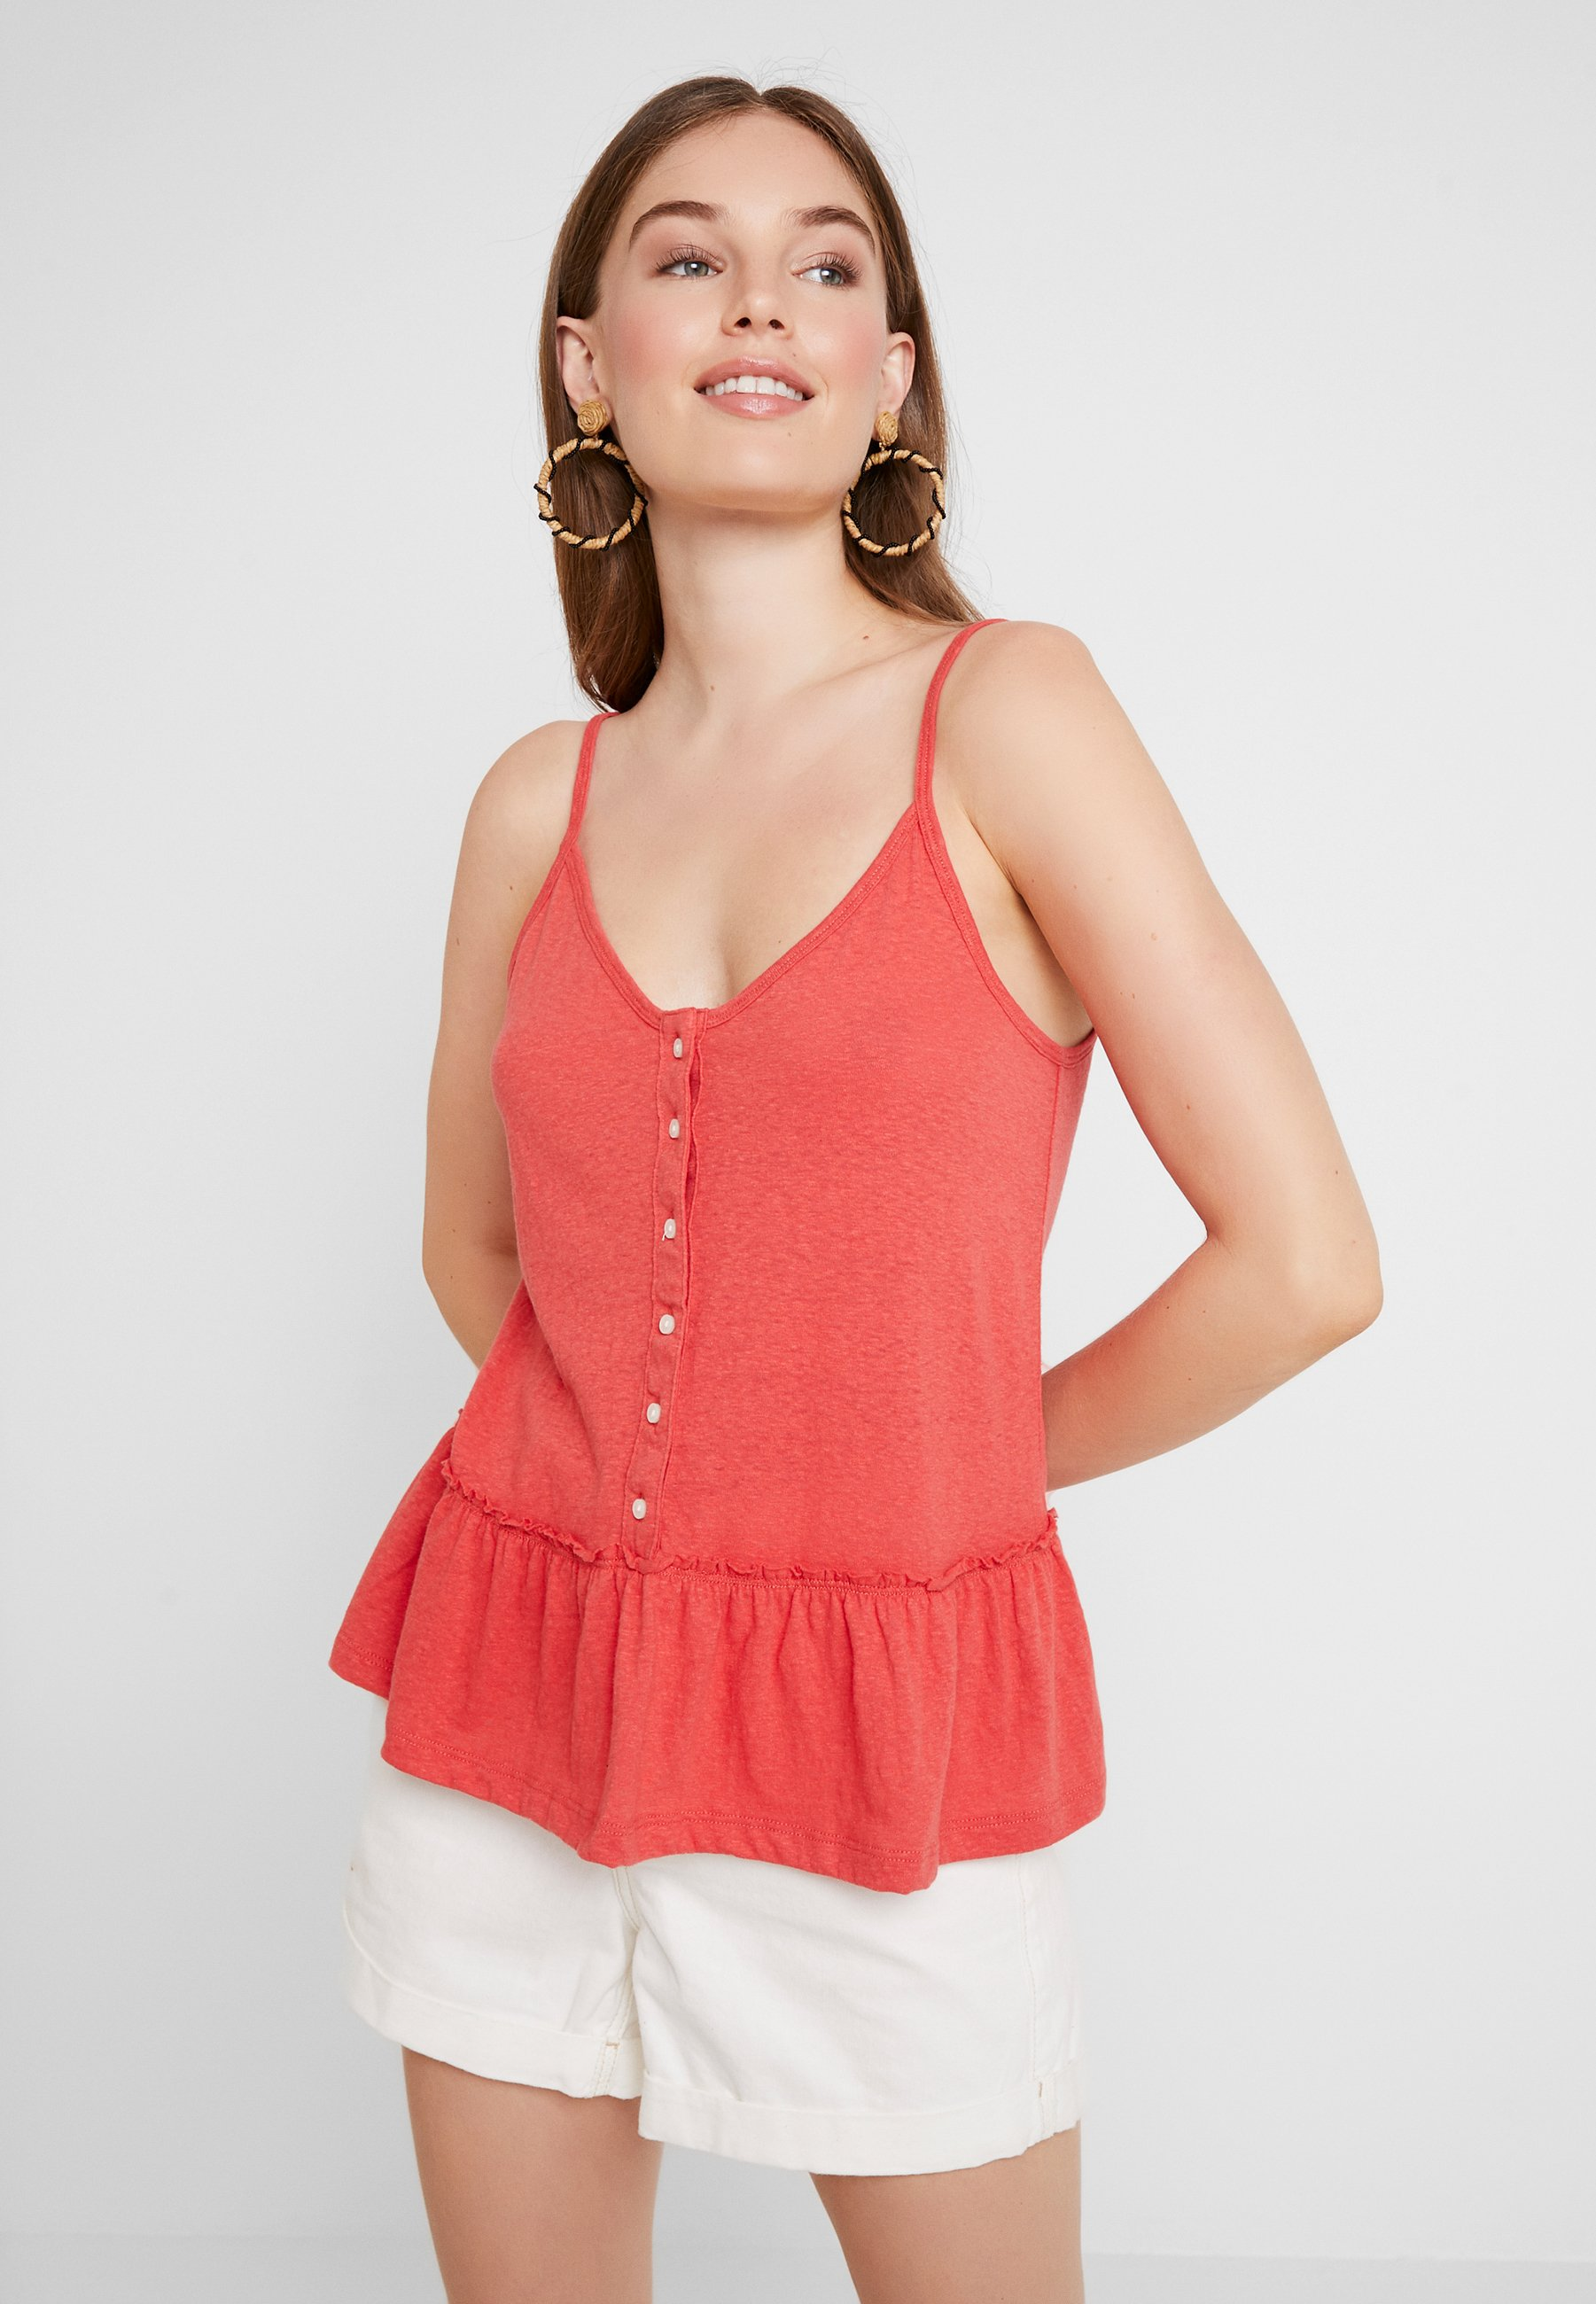 Red Abercrombieamp; Peplum Abercrombieamp; CamiDébardeur Fitch Red Fitch CamiDébardeur Peplum n0wm8N